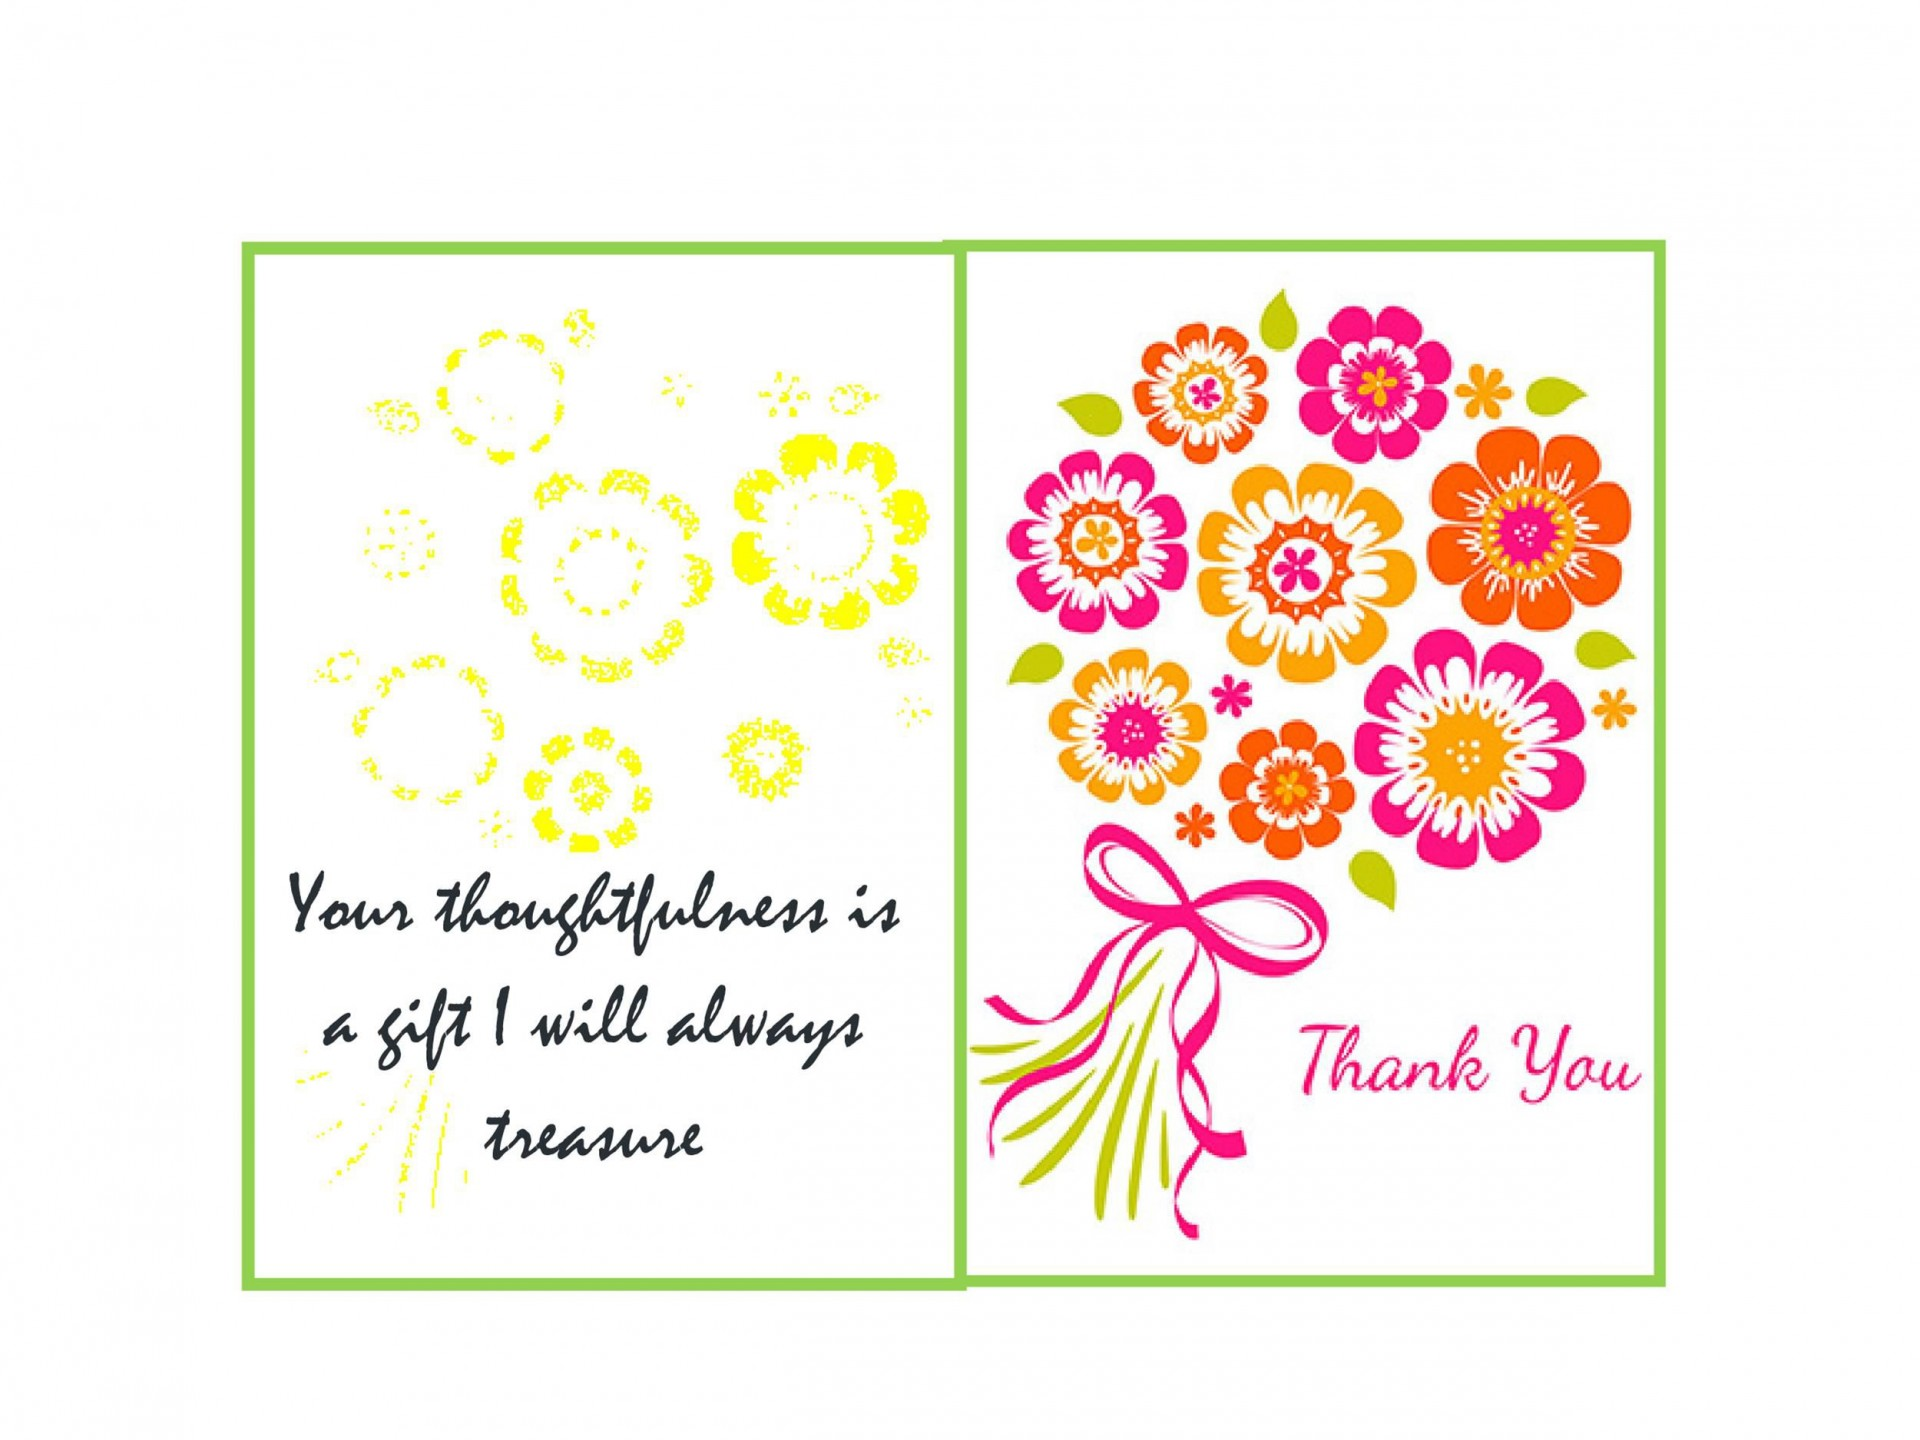 003 Dreaded Thank You Note Template Microsoft Word Image  Card Free Funeral Letter1920